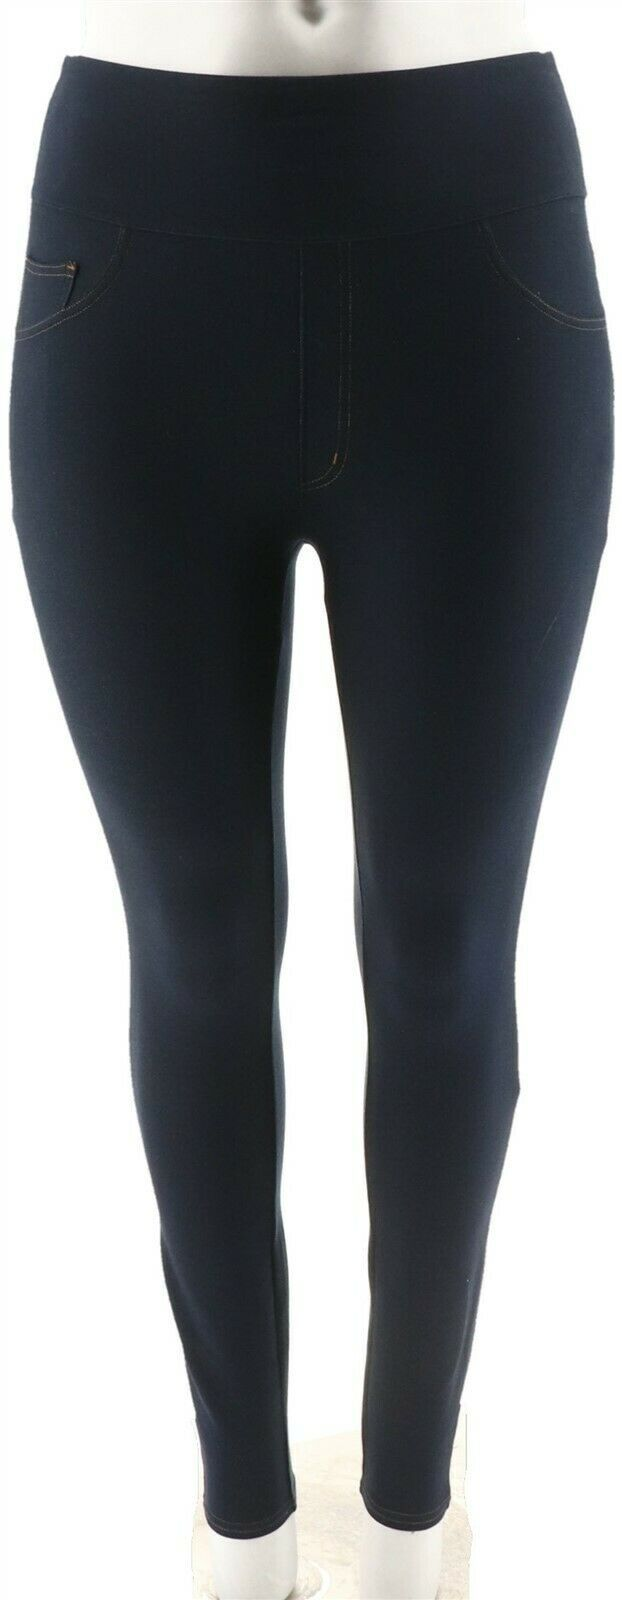 Primary image for Spanx Jean-Look Ankle Length Leggings Midnight Indigo 2X NEW A293566